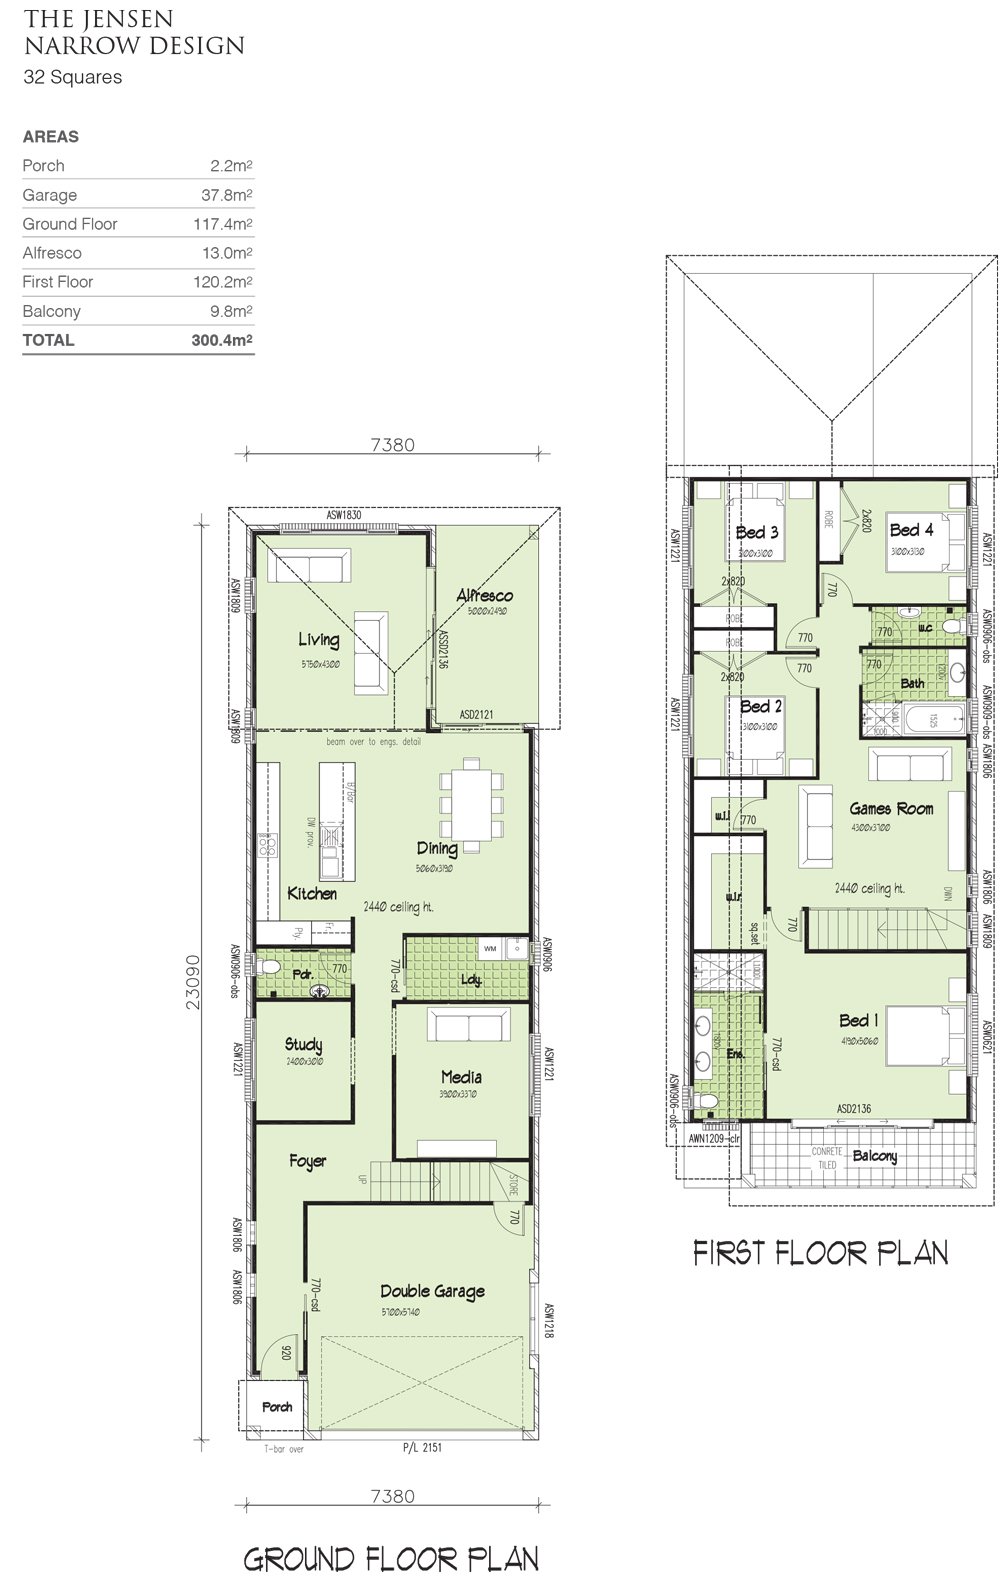 Jensen narrow design, Home Design, Tullipan Homes